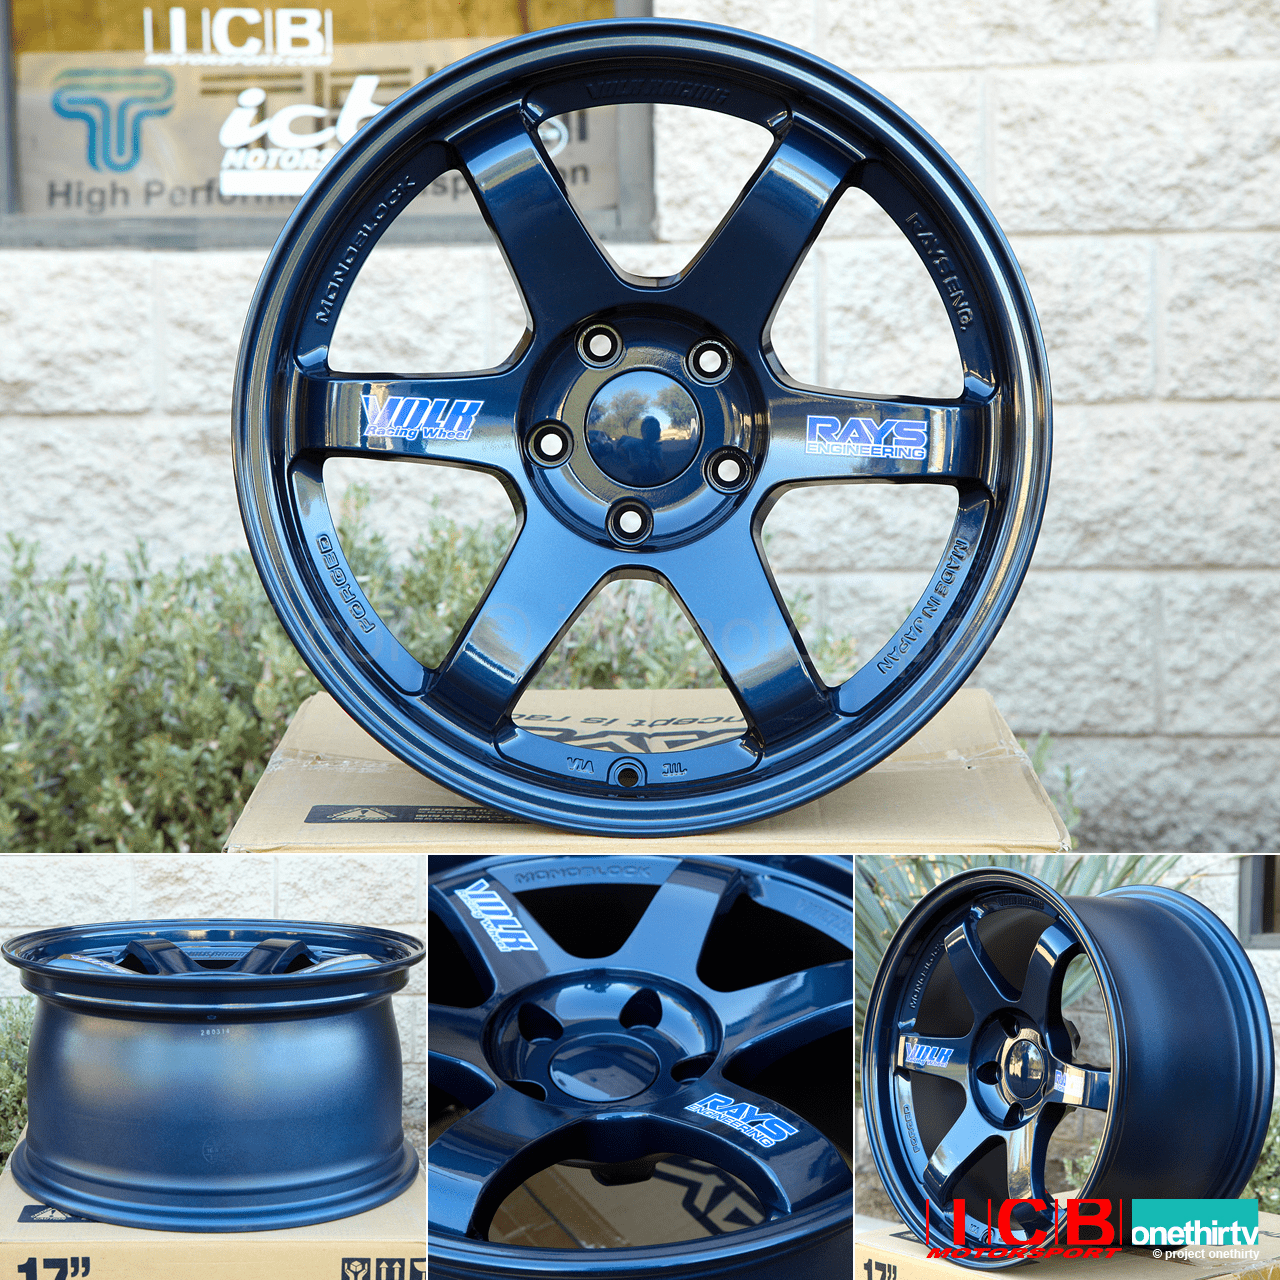 Rays Volk Racing TE37OG Mag Blue Wheels Set 5X114.3 17X9 +34 Offset 18X10.5 +45 Double Concave